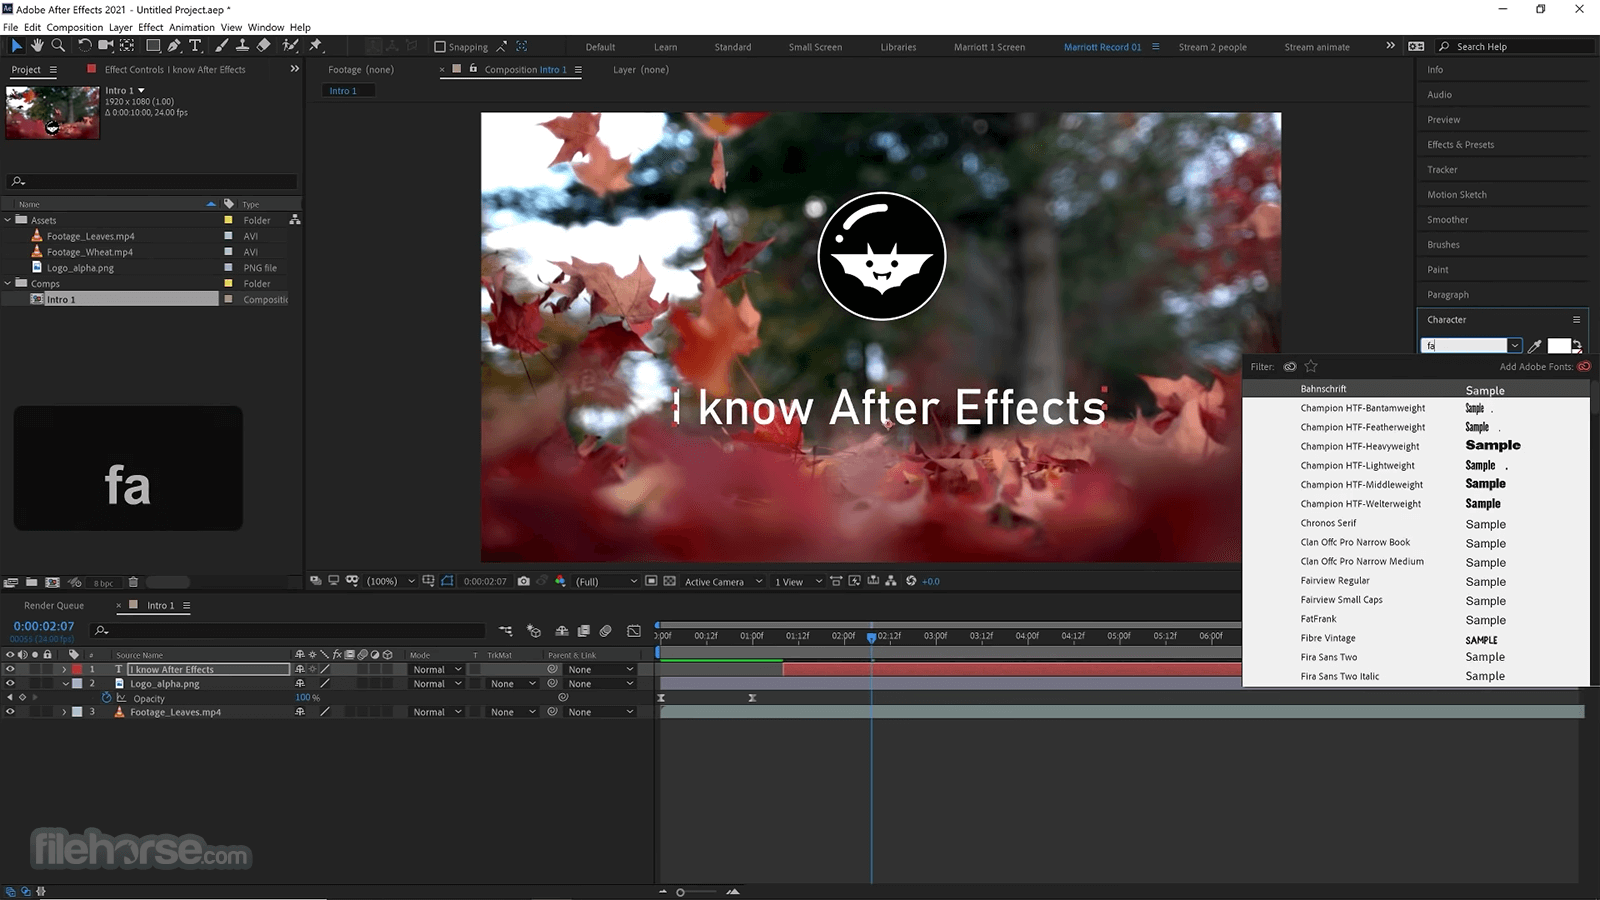 adobe after effects 30 day free trial